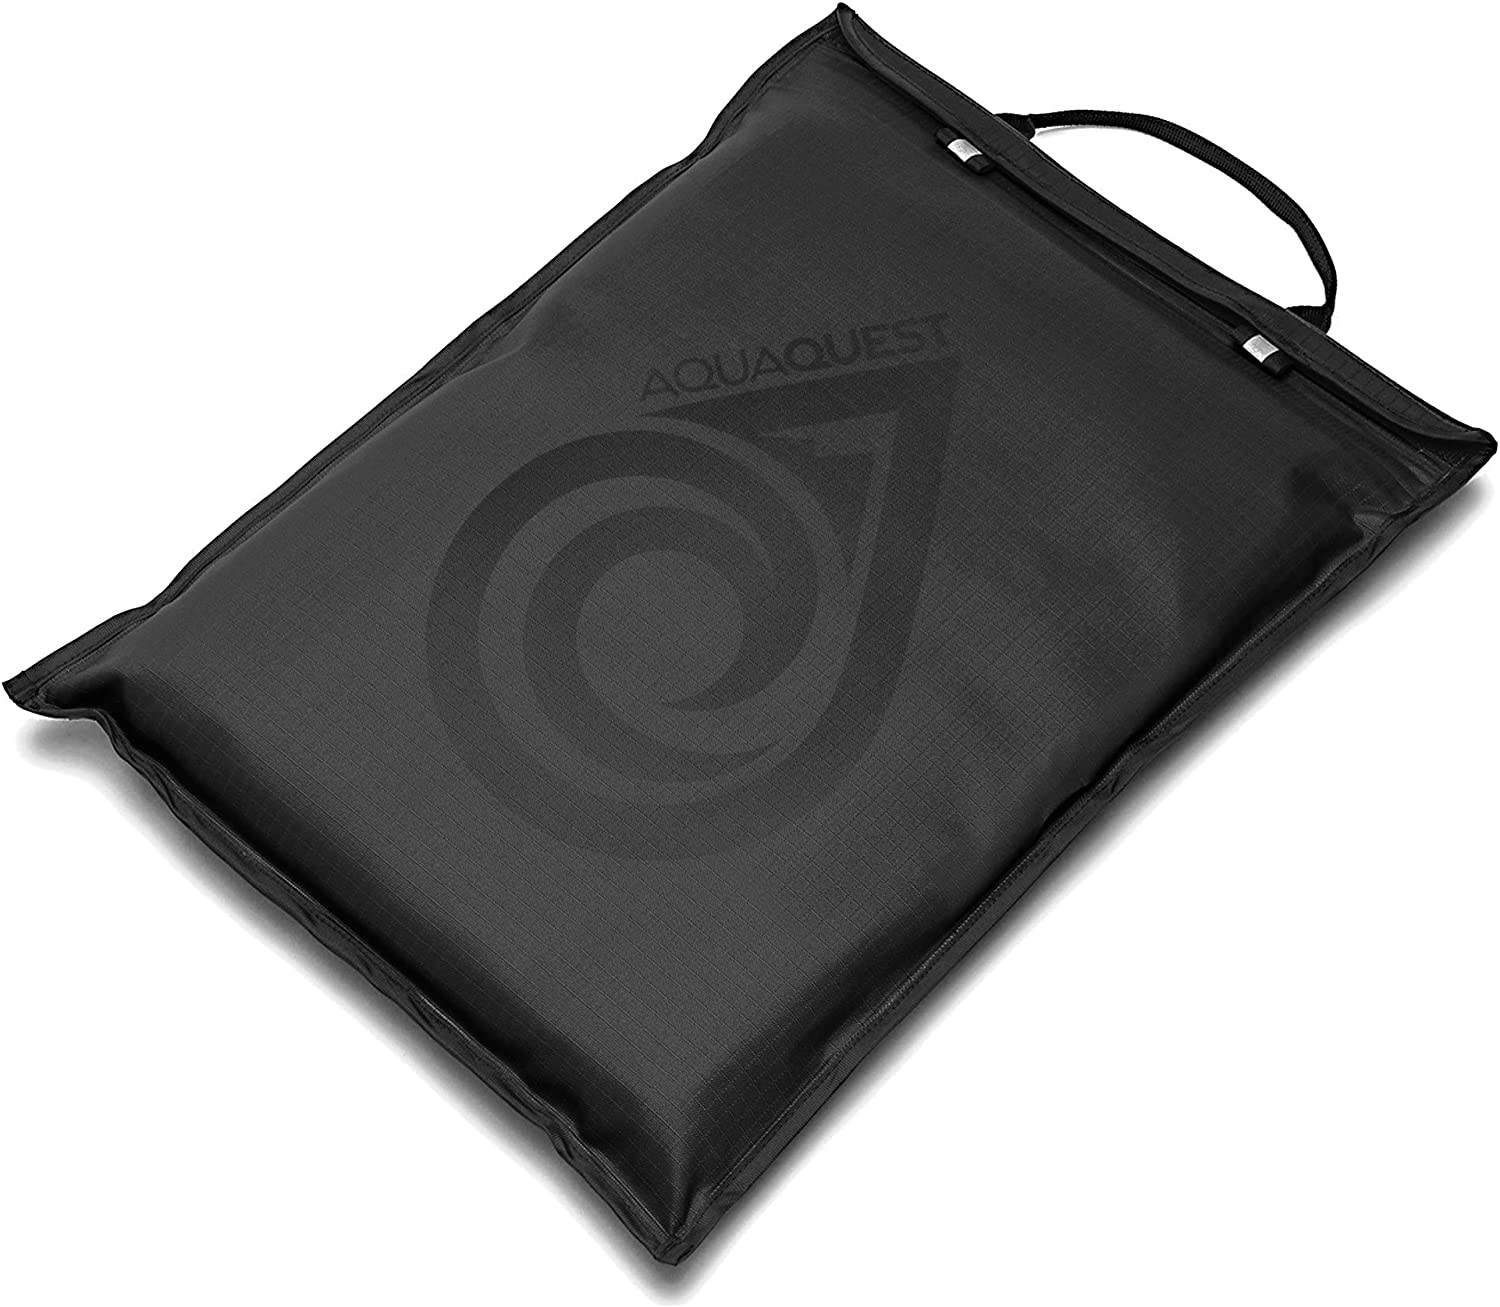 "Aqua Quest Storm Laptop Sleeve - 100% Waterproof, Lightweight, Durable, Padded Case - Protective Computer Pouch Cover Bag - 17"" Black"